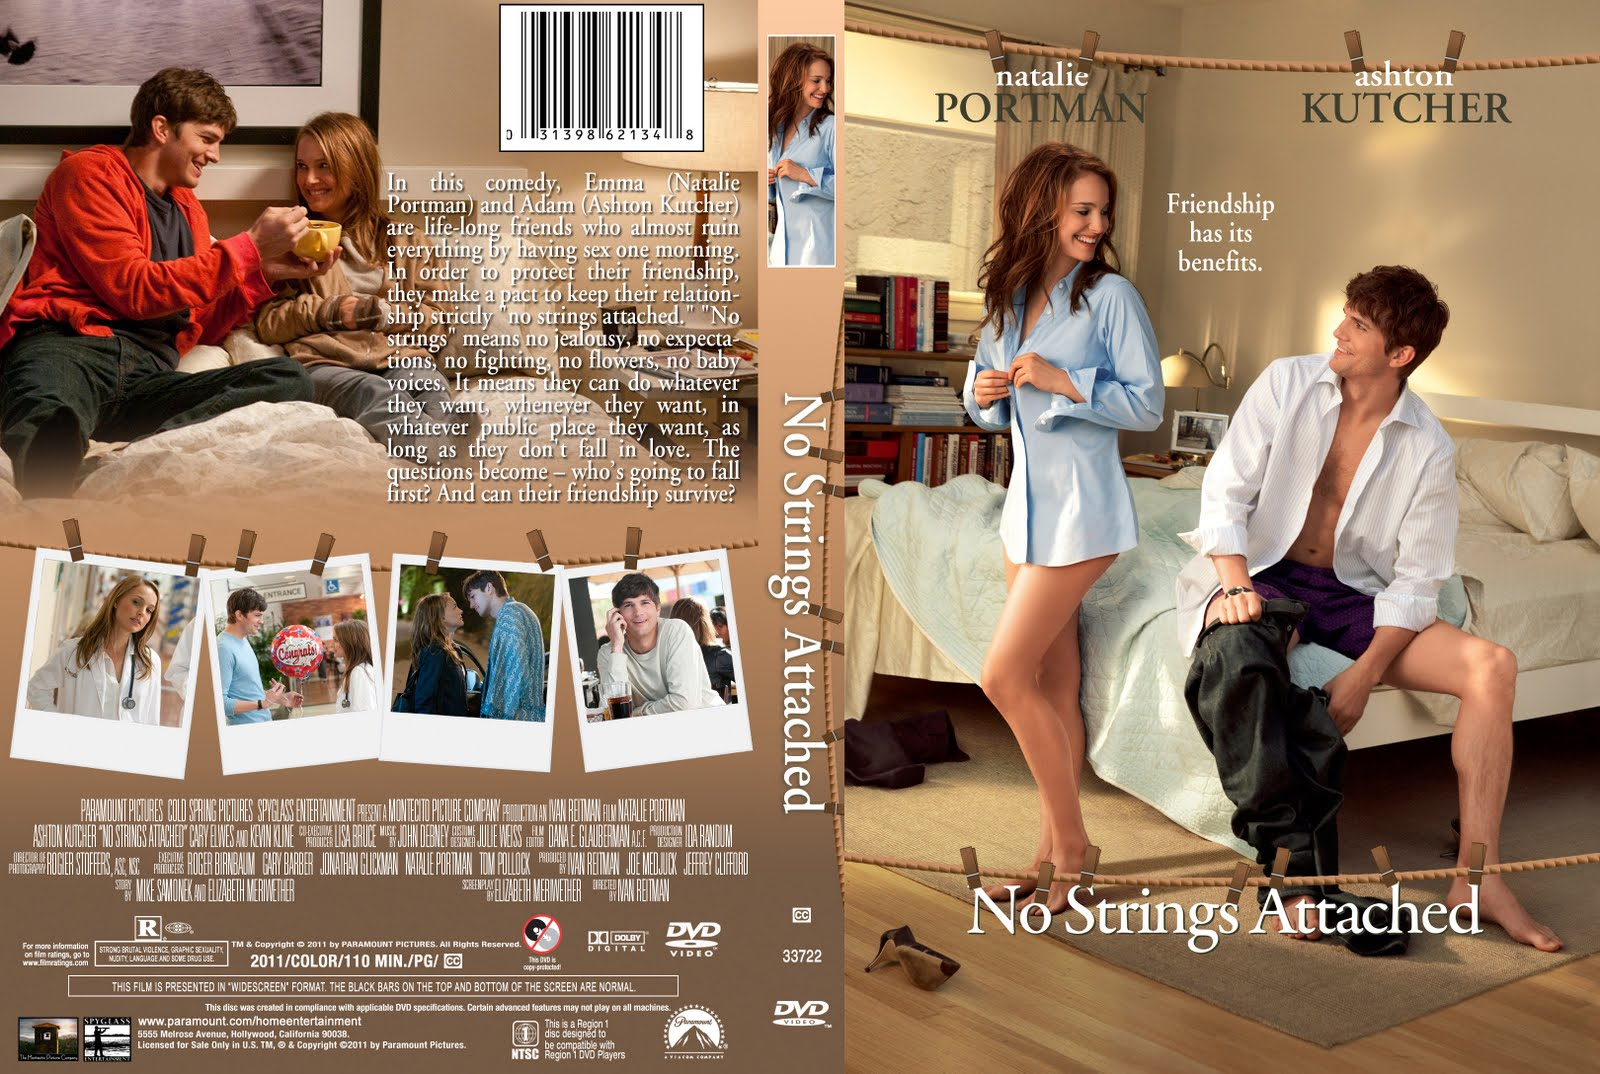 http://4.bp.blogspot.com/-xR53oRSxU9g/TZZ1lqcNngI/AAAAAAAAAGo/e0QMitqU51Q/s1600/No-Strings-Attached-dvd-cover.jpg